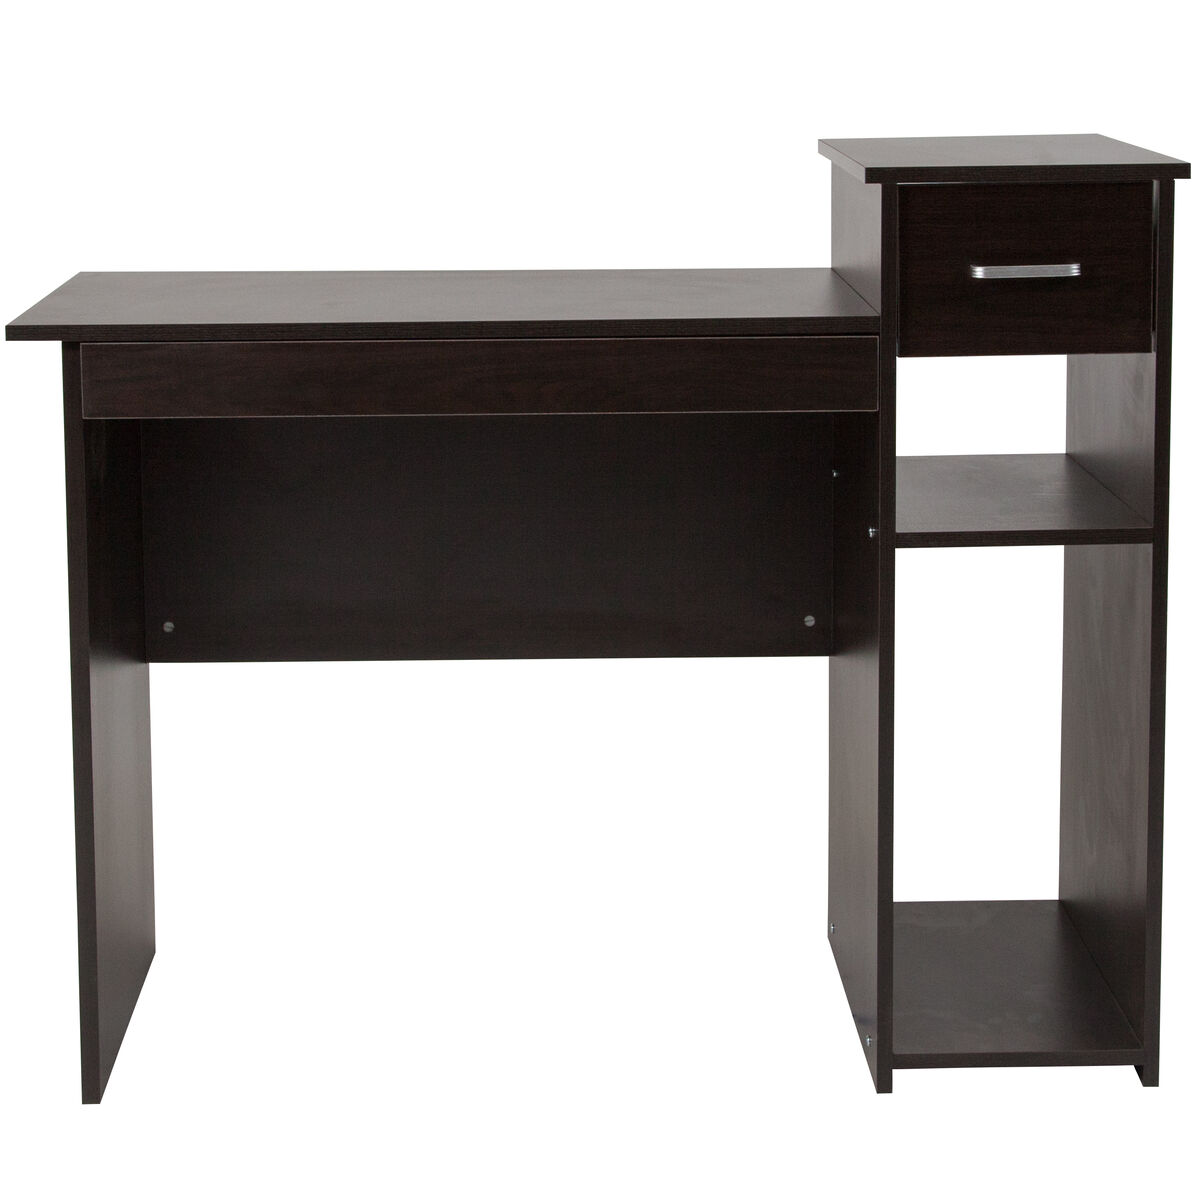 Our Highland Park Espresso Wood Grain Finish Computer Desk With Shelves And Drawer Is On